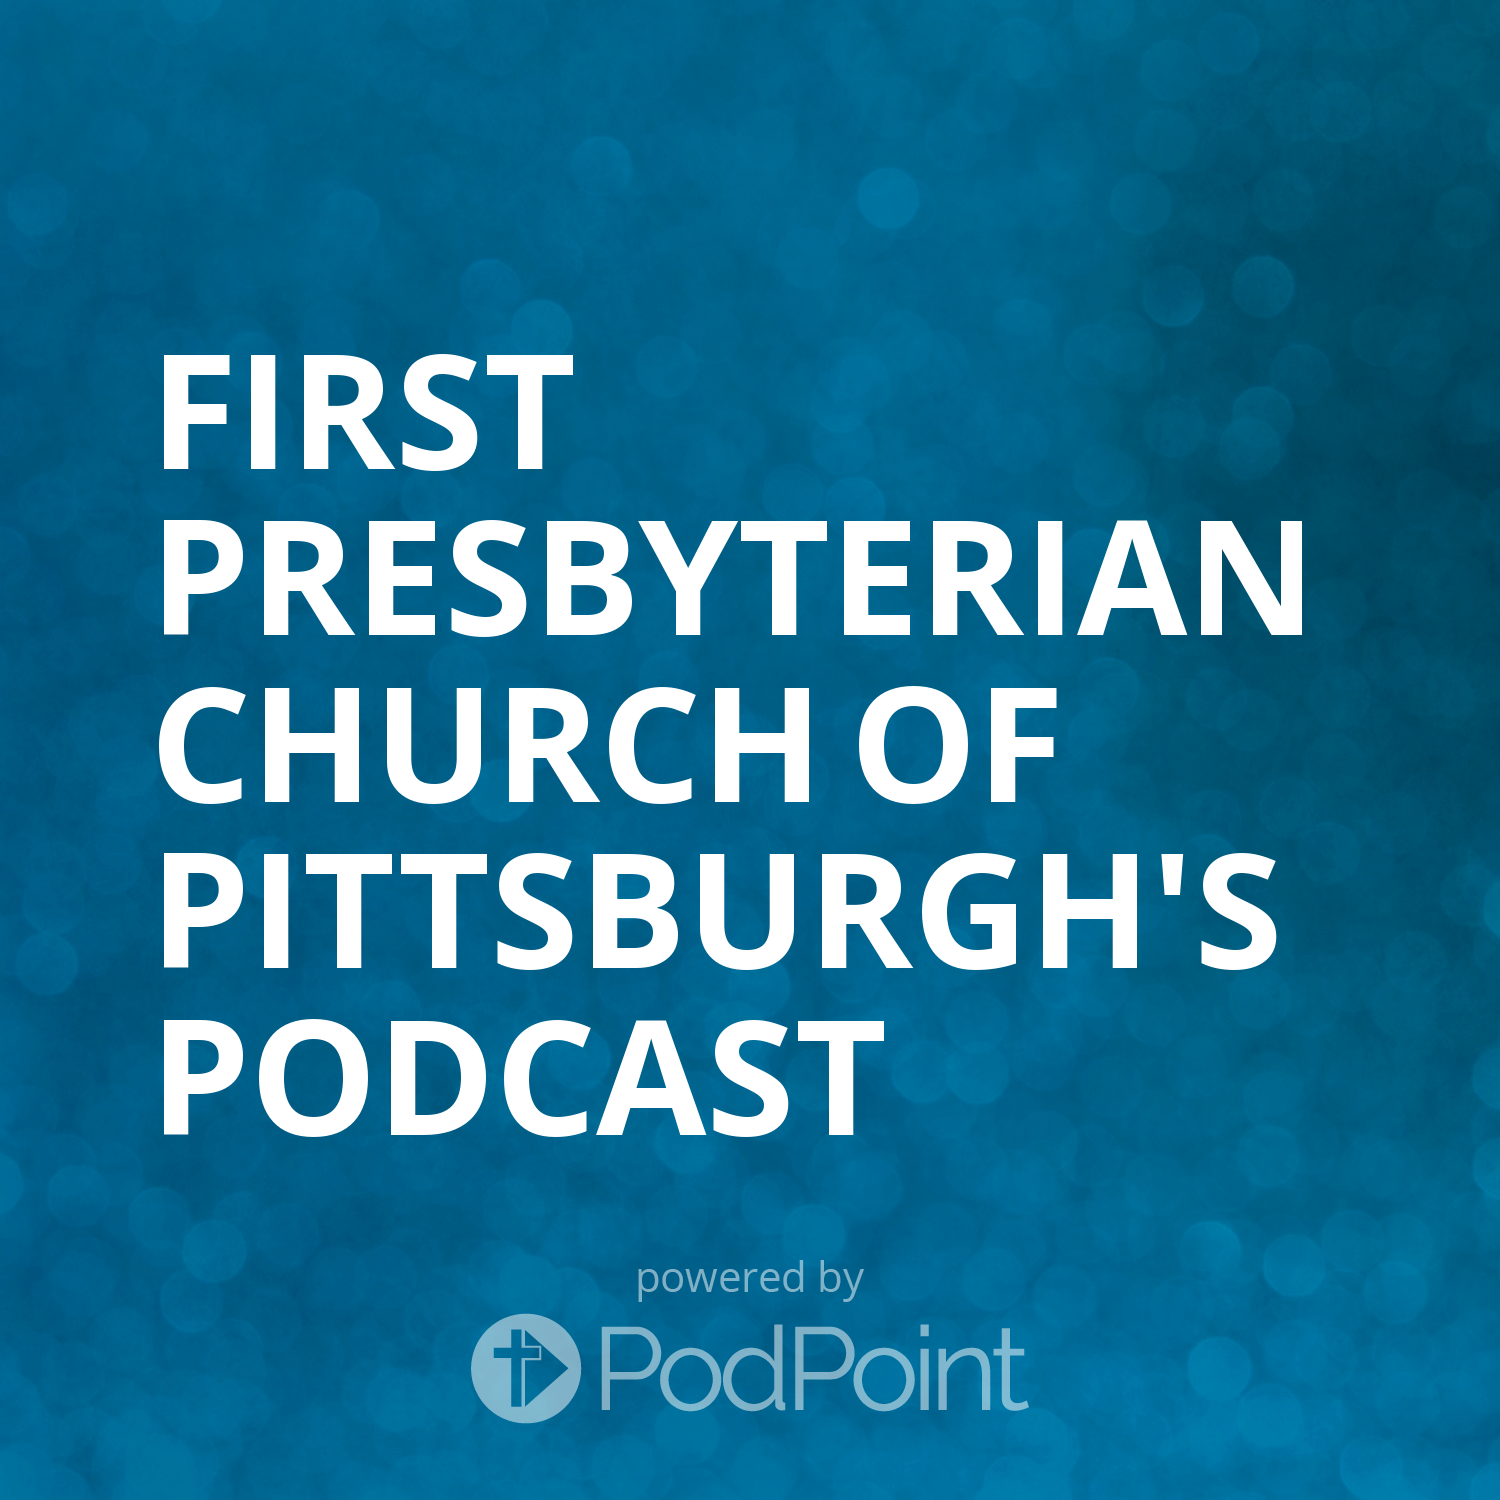 First Presbyterian Church of Pittsburgh's Podcast